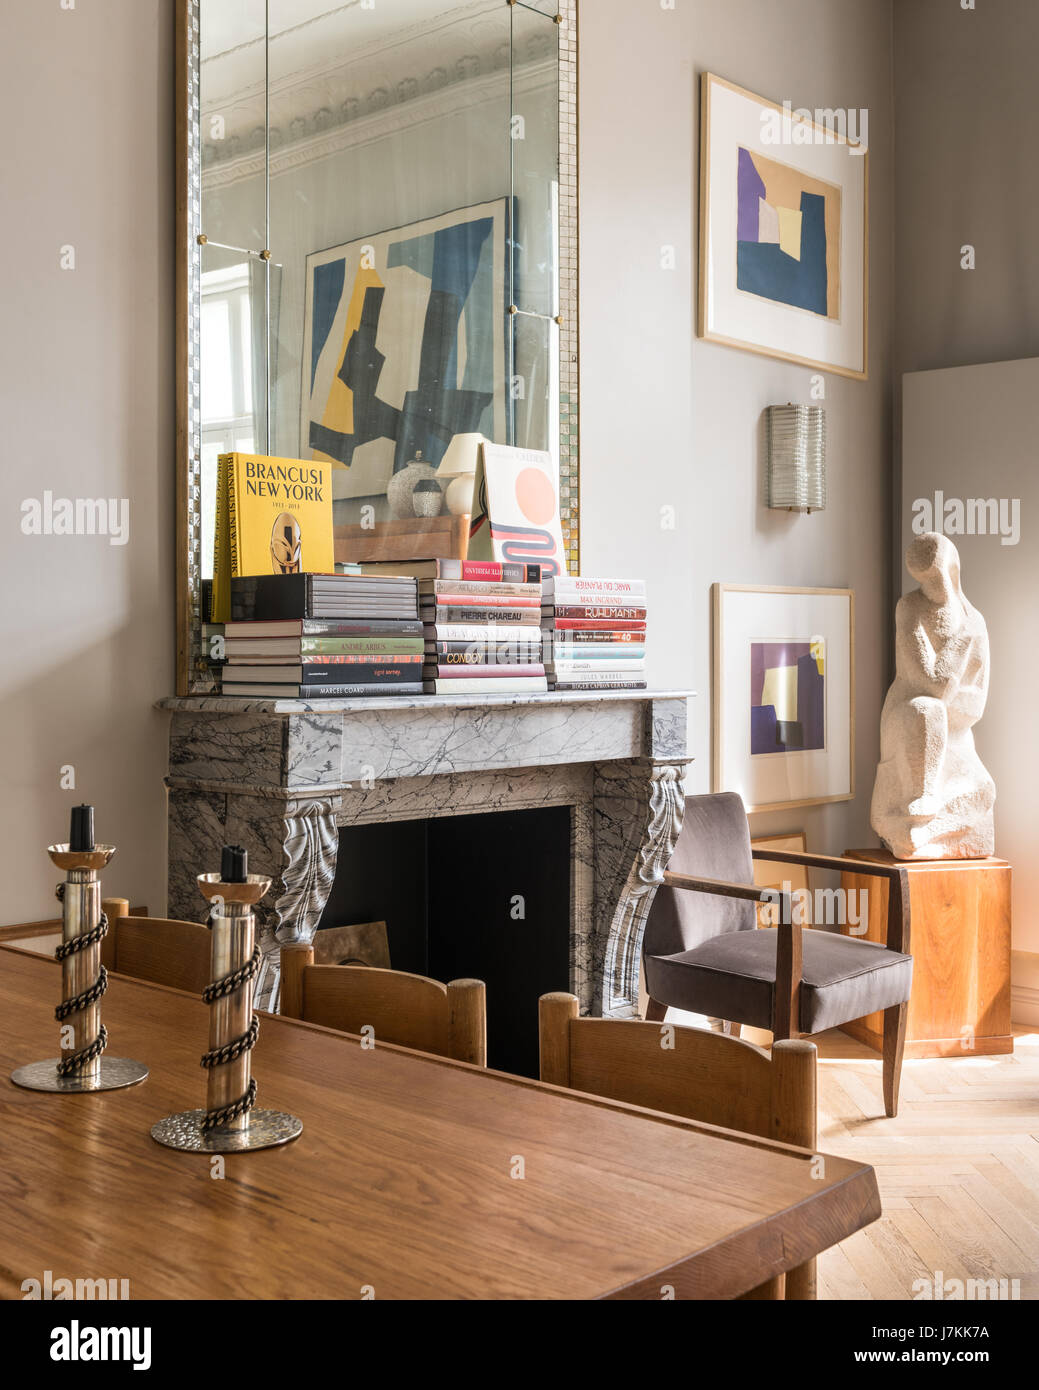 French grey marble fireplace with leaf motif and simple 1940s style mirror - Stock Image